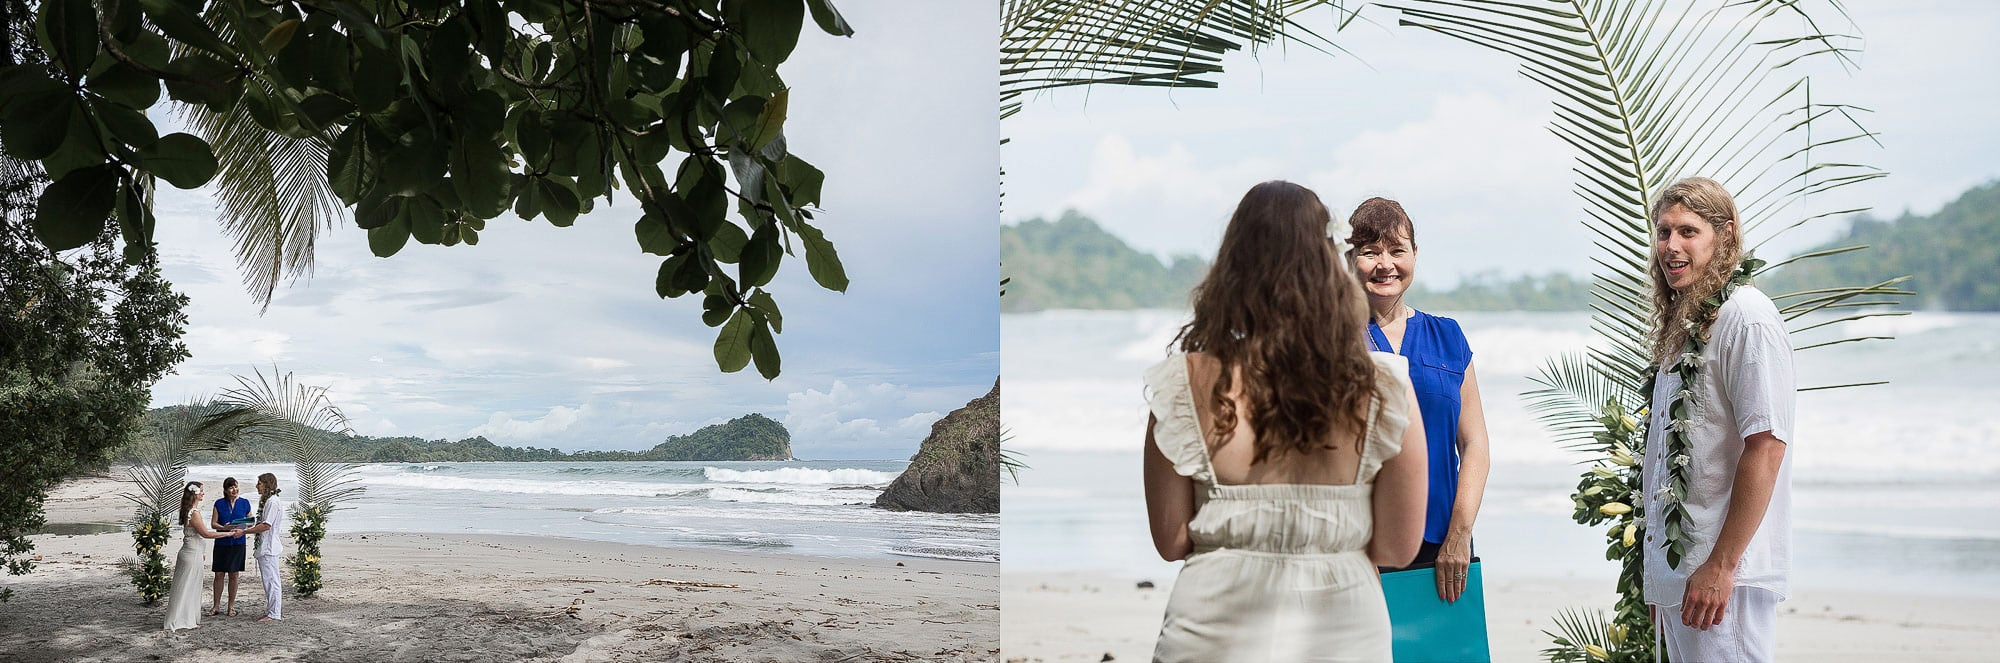 Best places to elope on the beach